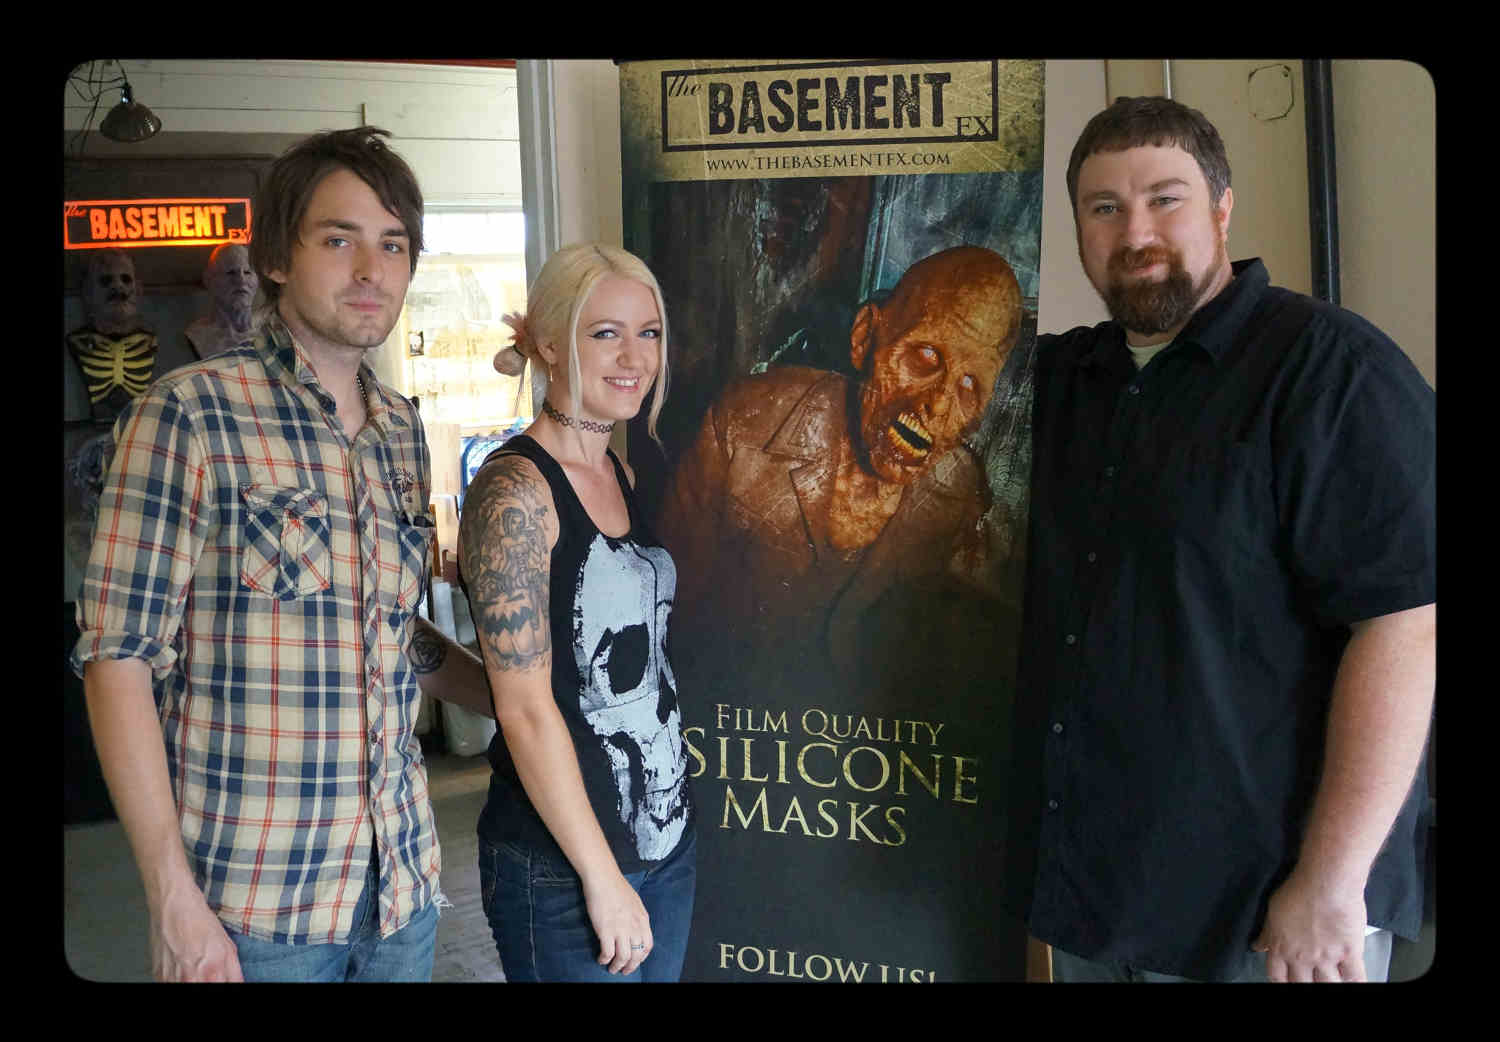 The Basement FX